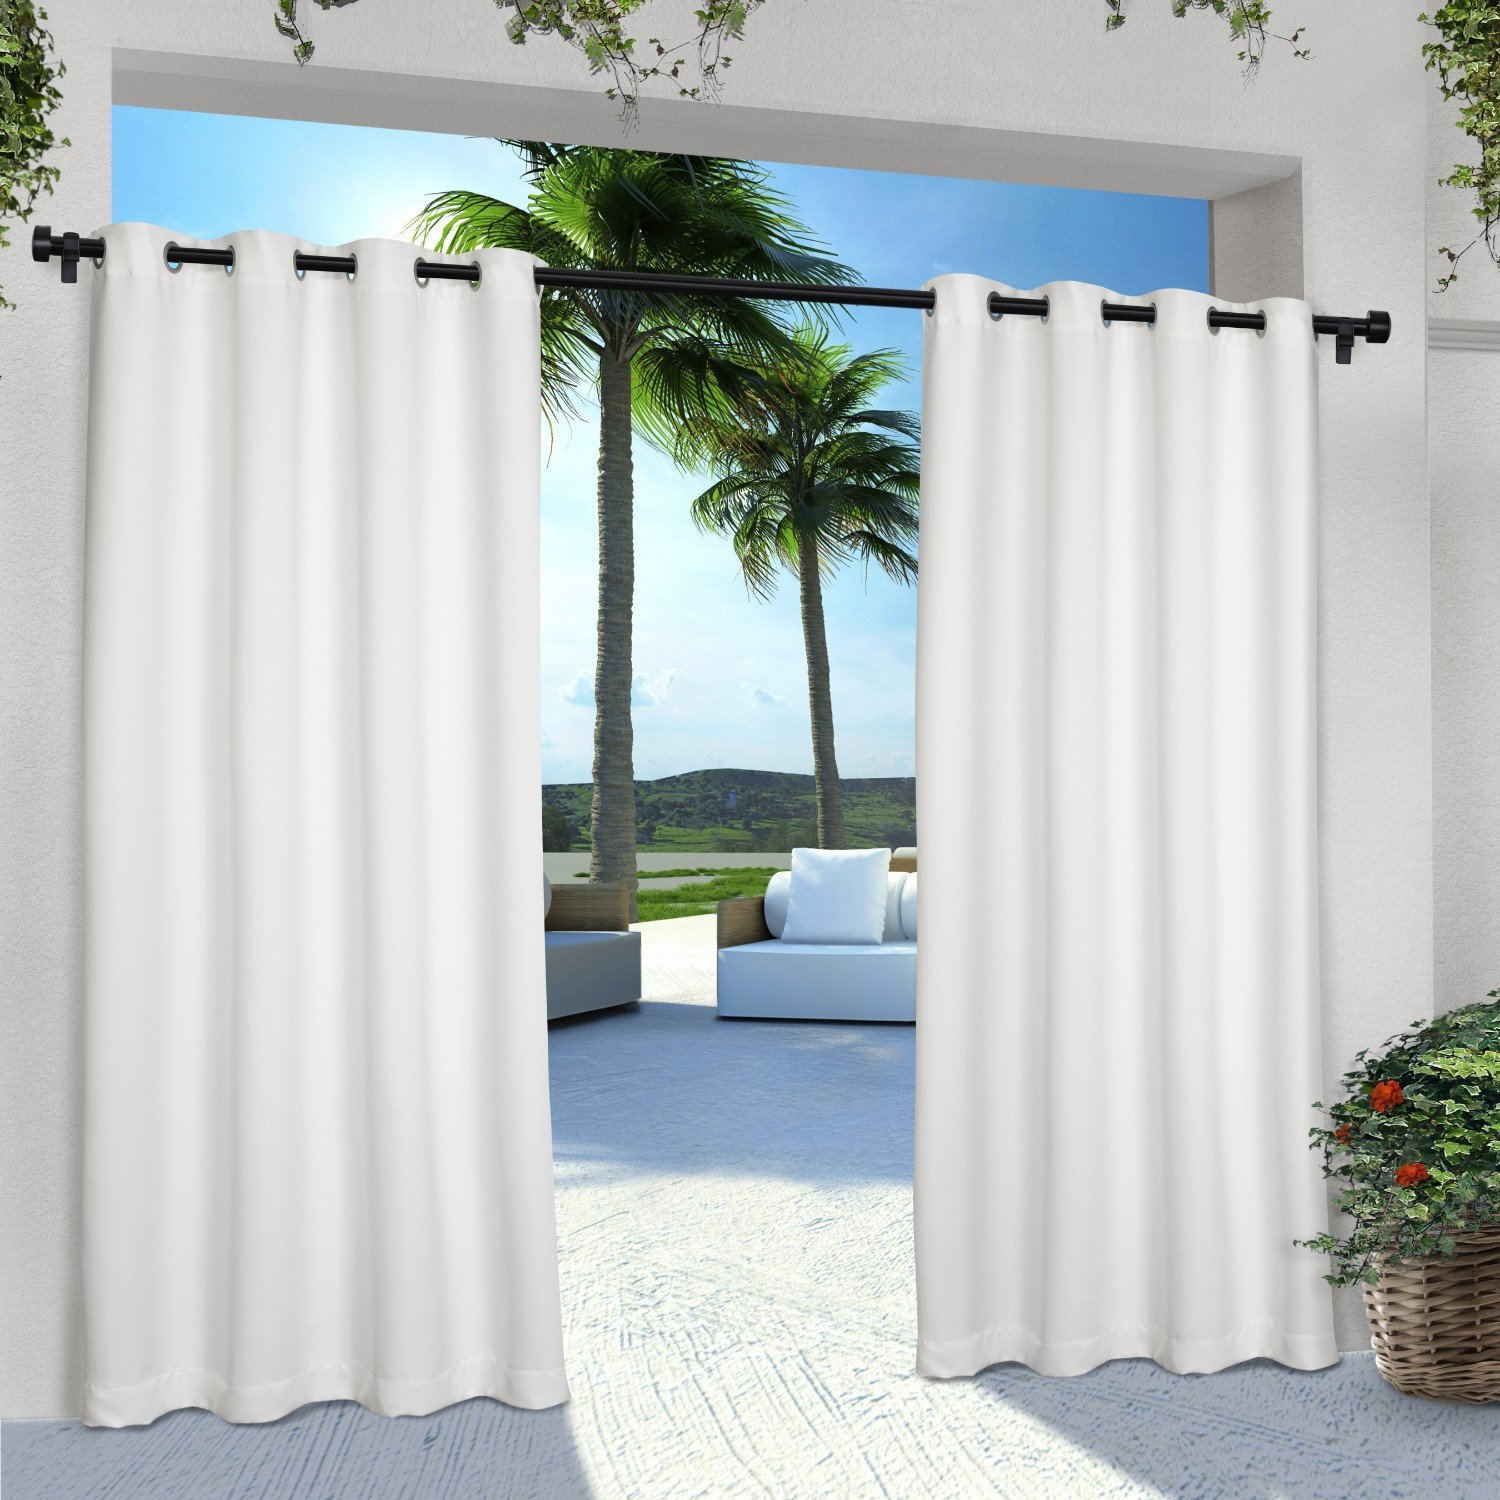 Exclusive Home Curtains Indoor/Outdoor Solid Cabana Grommet Top Window Curtain Panel Pair, Winter White